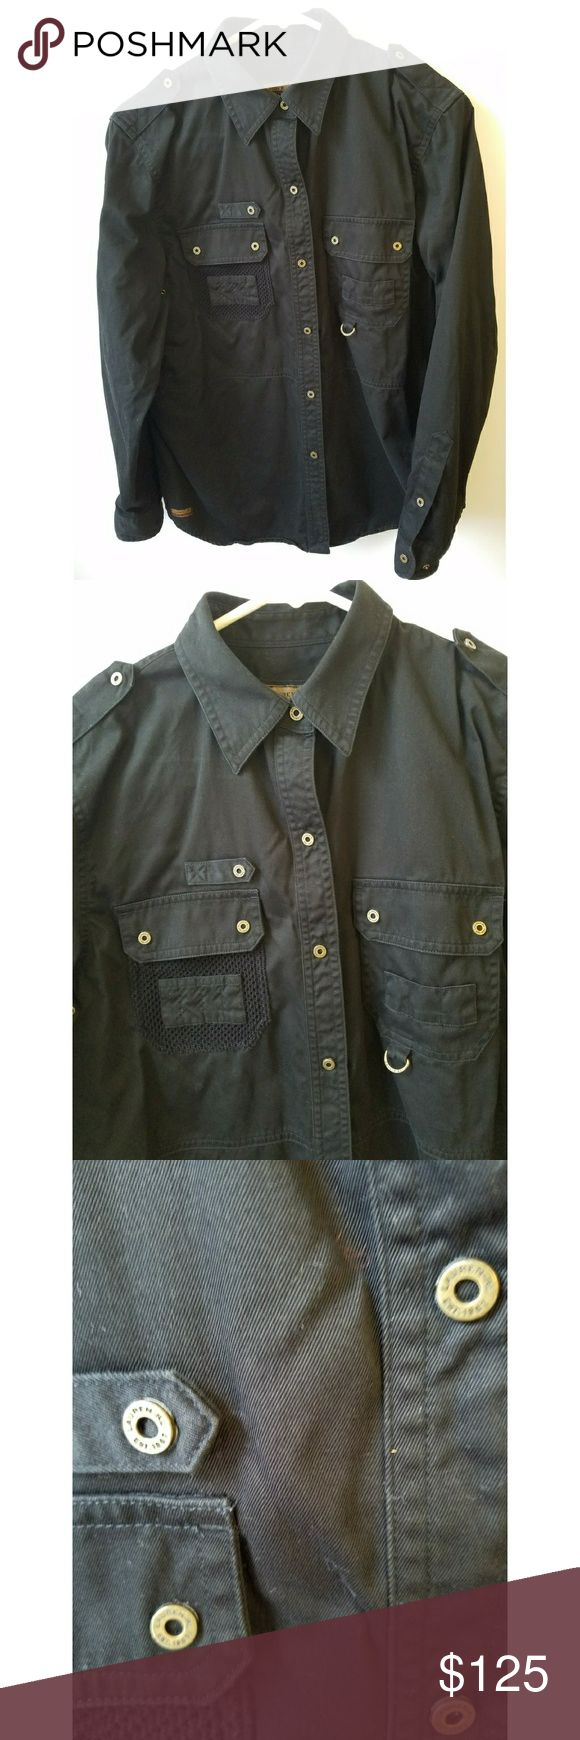 """Ralph Lauren Field Button Down Fishing Jacket * Worn / Excellent Condition  * 100% Cotton Lightweight, Black WOMENS Jacket From Ralph Lauren Features Many Button Snaps And Two Front Chest Pockets  *  """"Ralph Lauren Quality Field Tested Products"""" Ralph Lauren Jackets & Coats"""